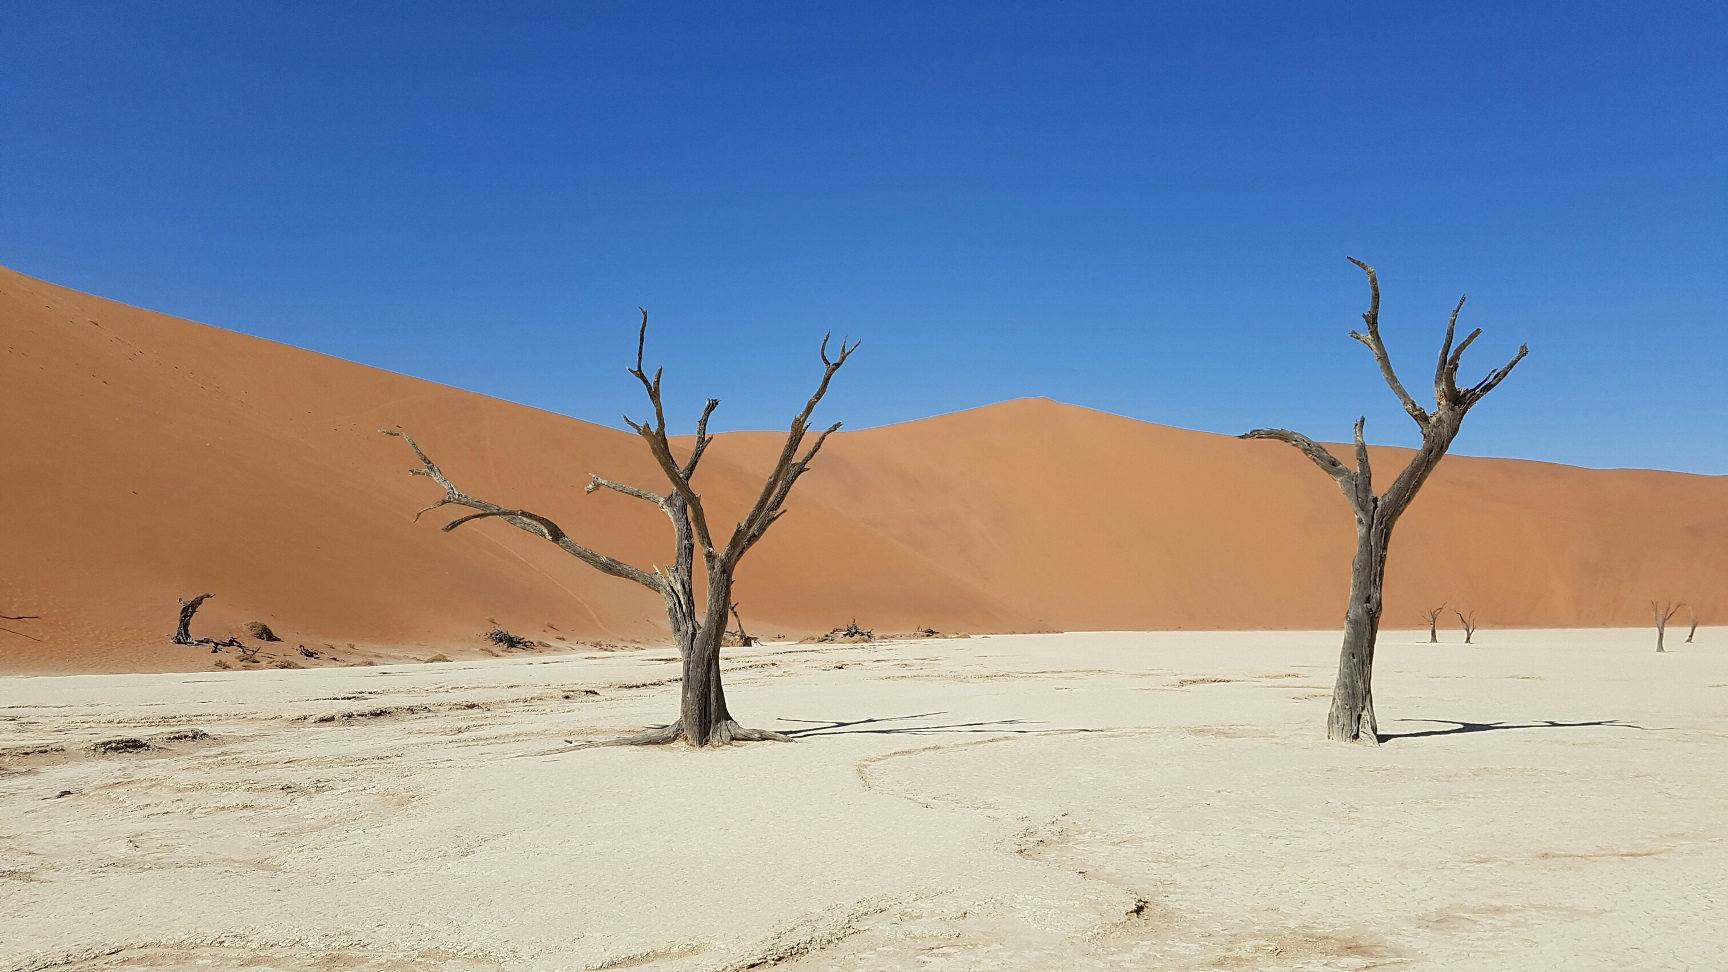 It is Namibia